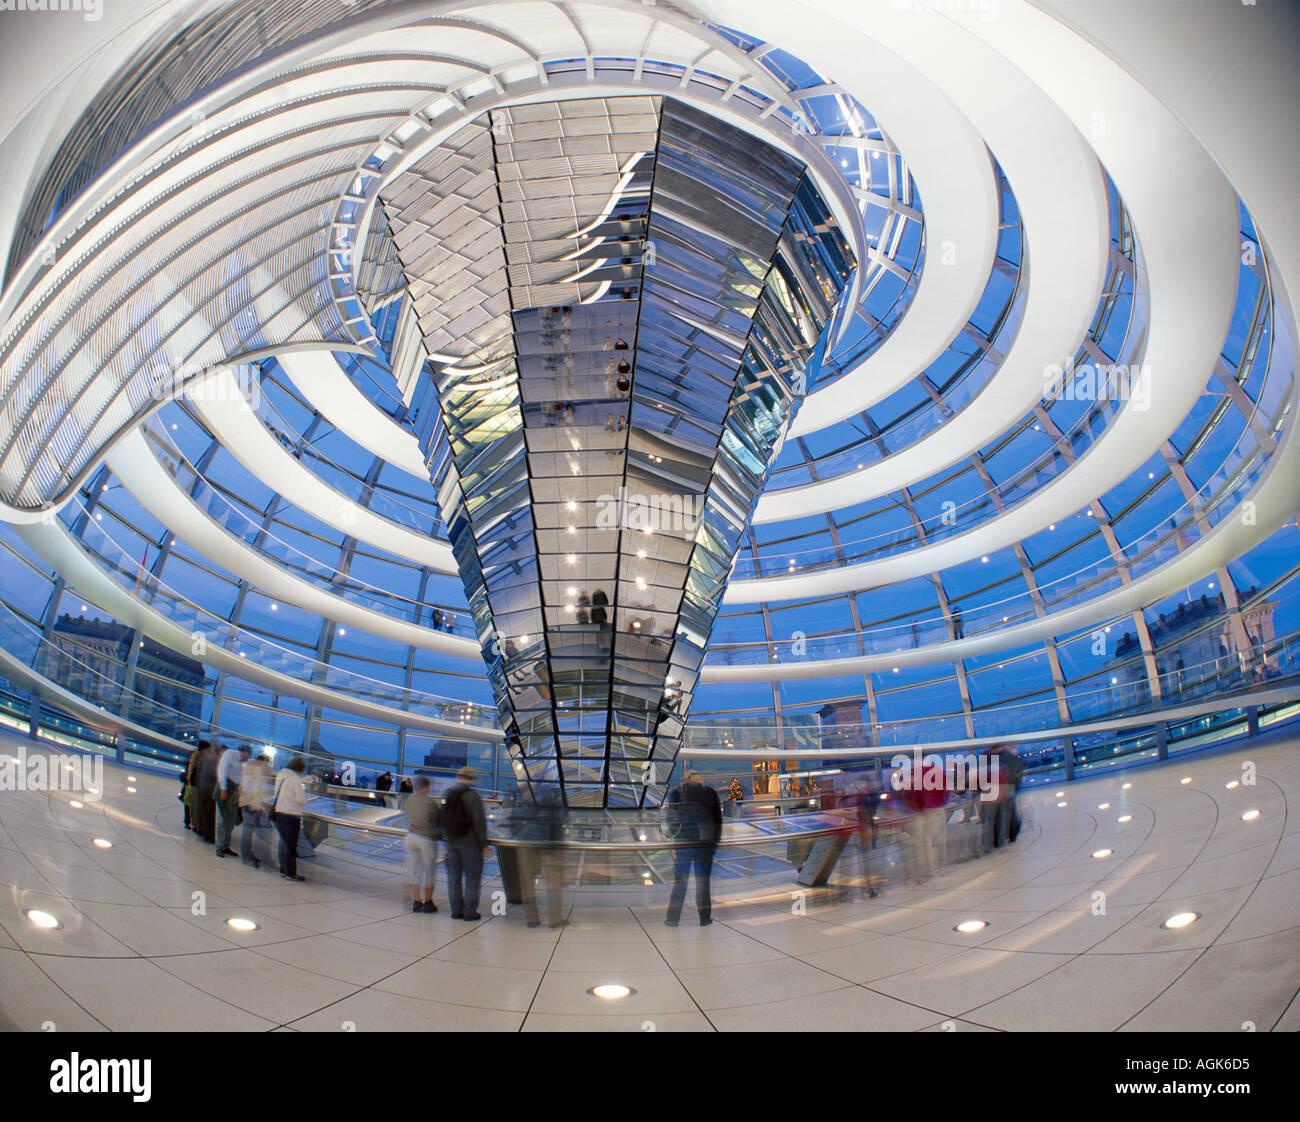 interior of the reichstag dome parliament building berlin germany stock photo royalty free. Black Bedroom Furniture Sets. Home Design Ideas